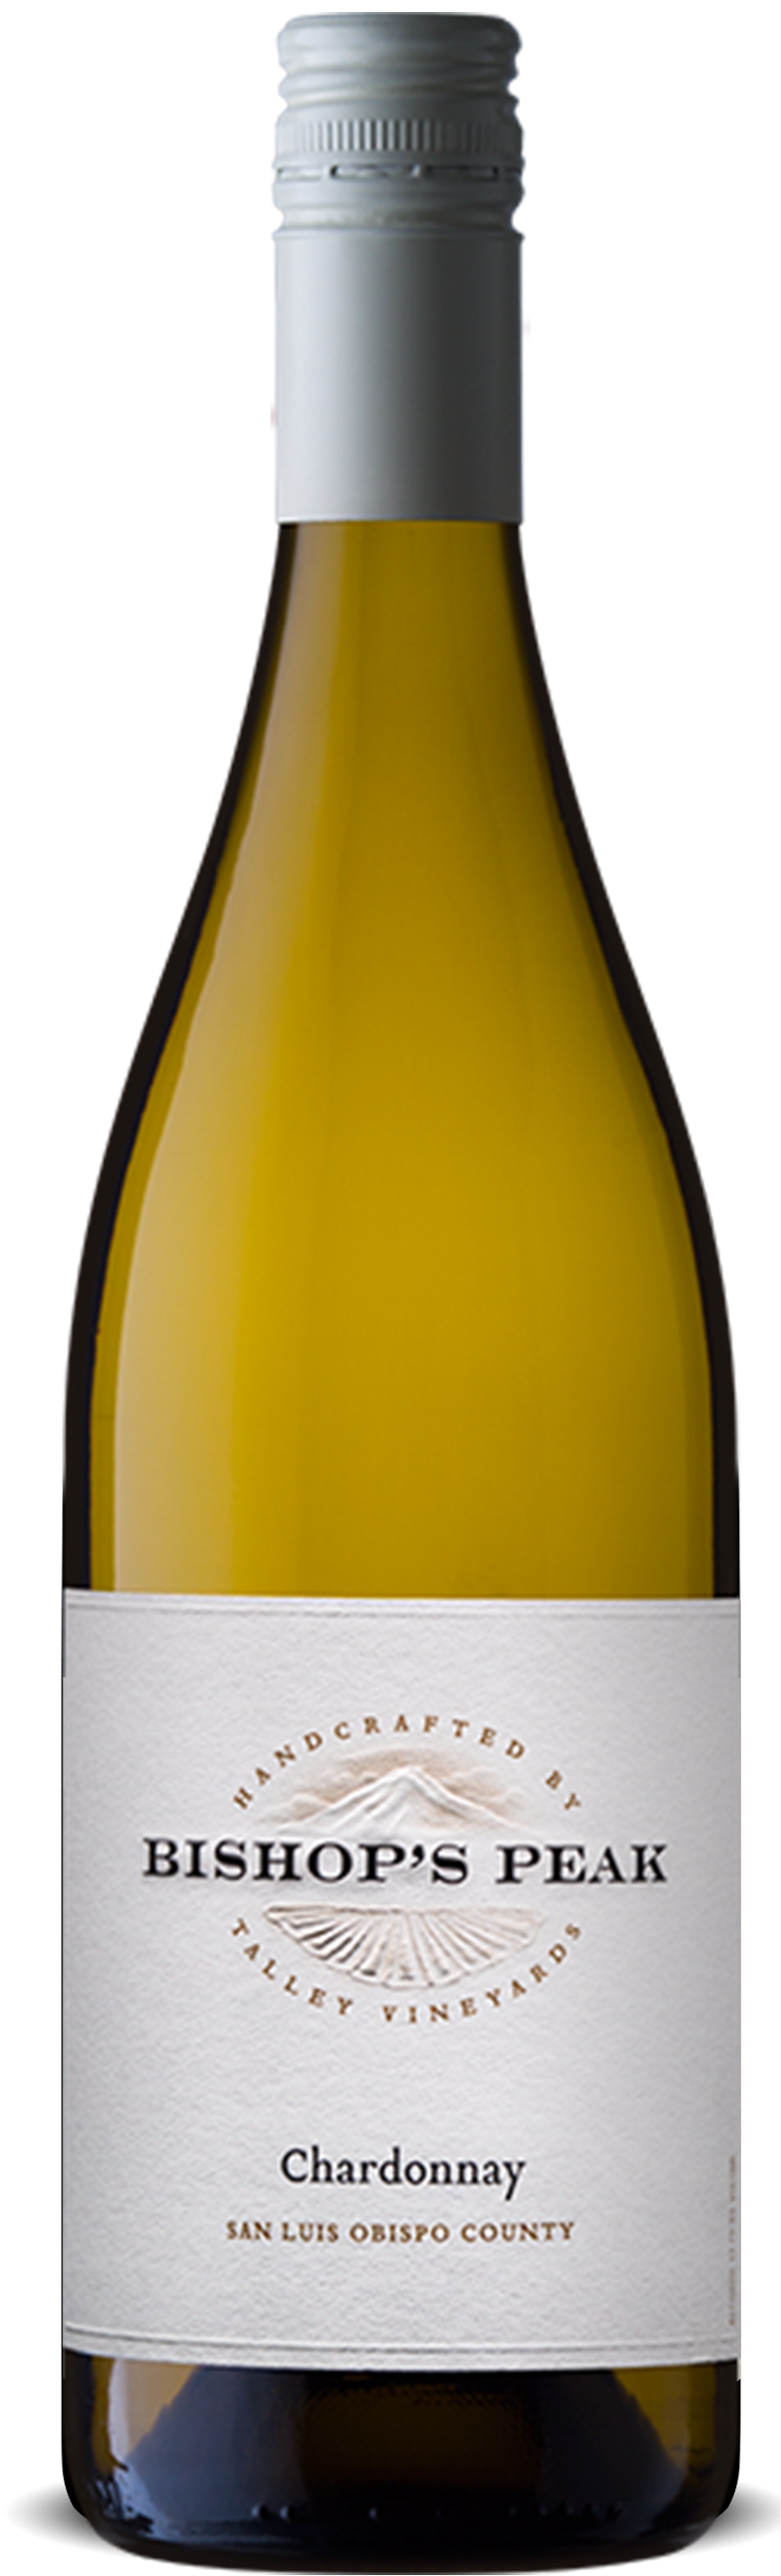 A bottle of Bishop's Peak Chardonnay made by Talley Vineyards.